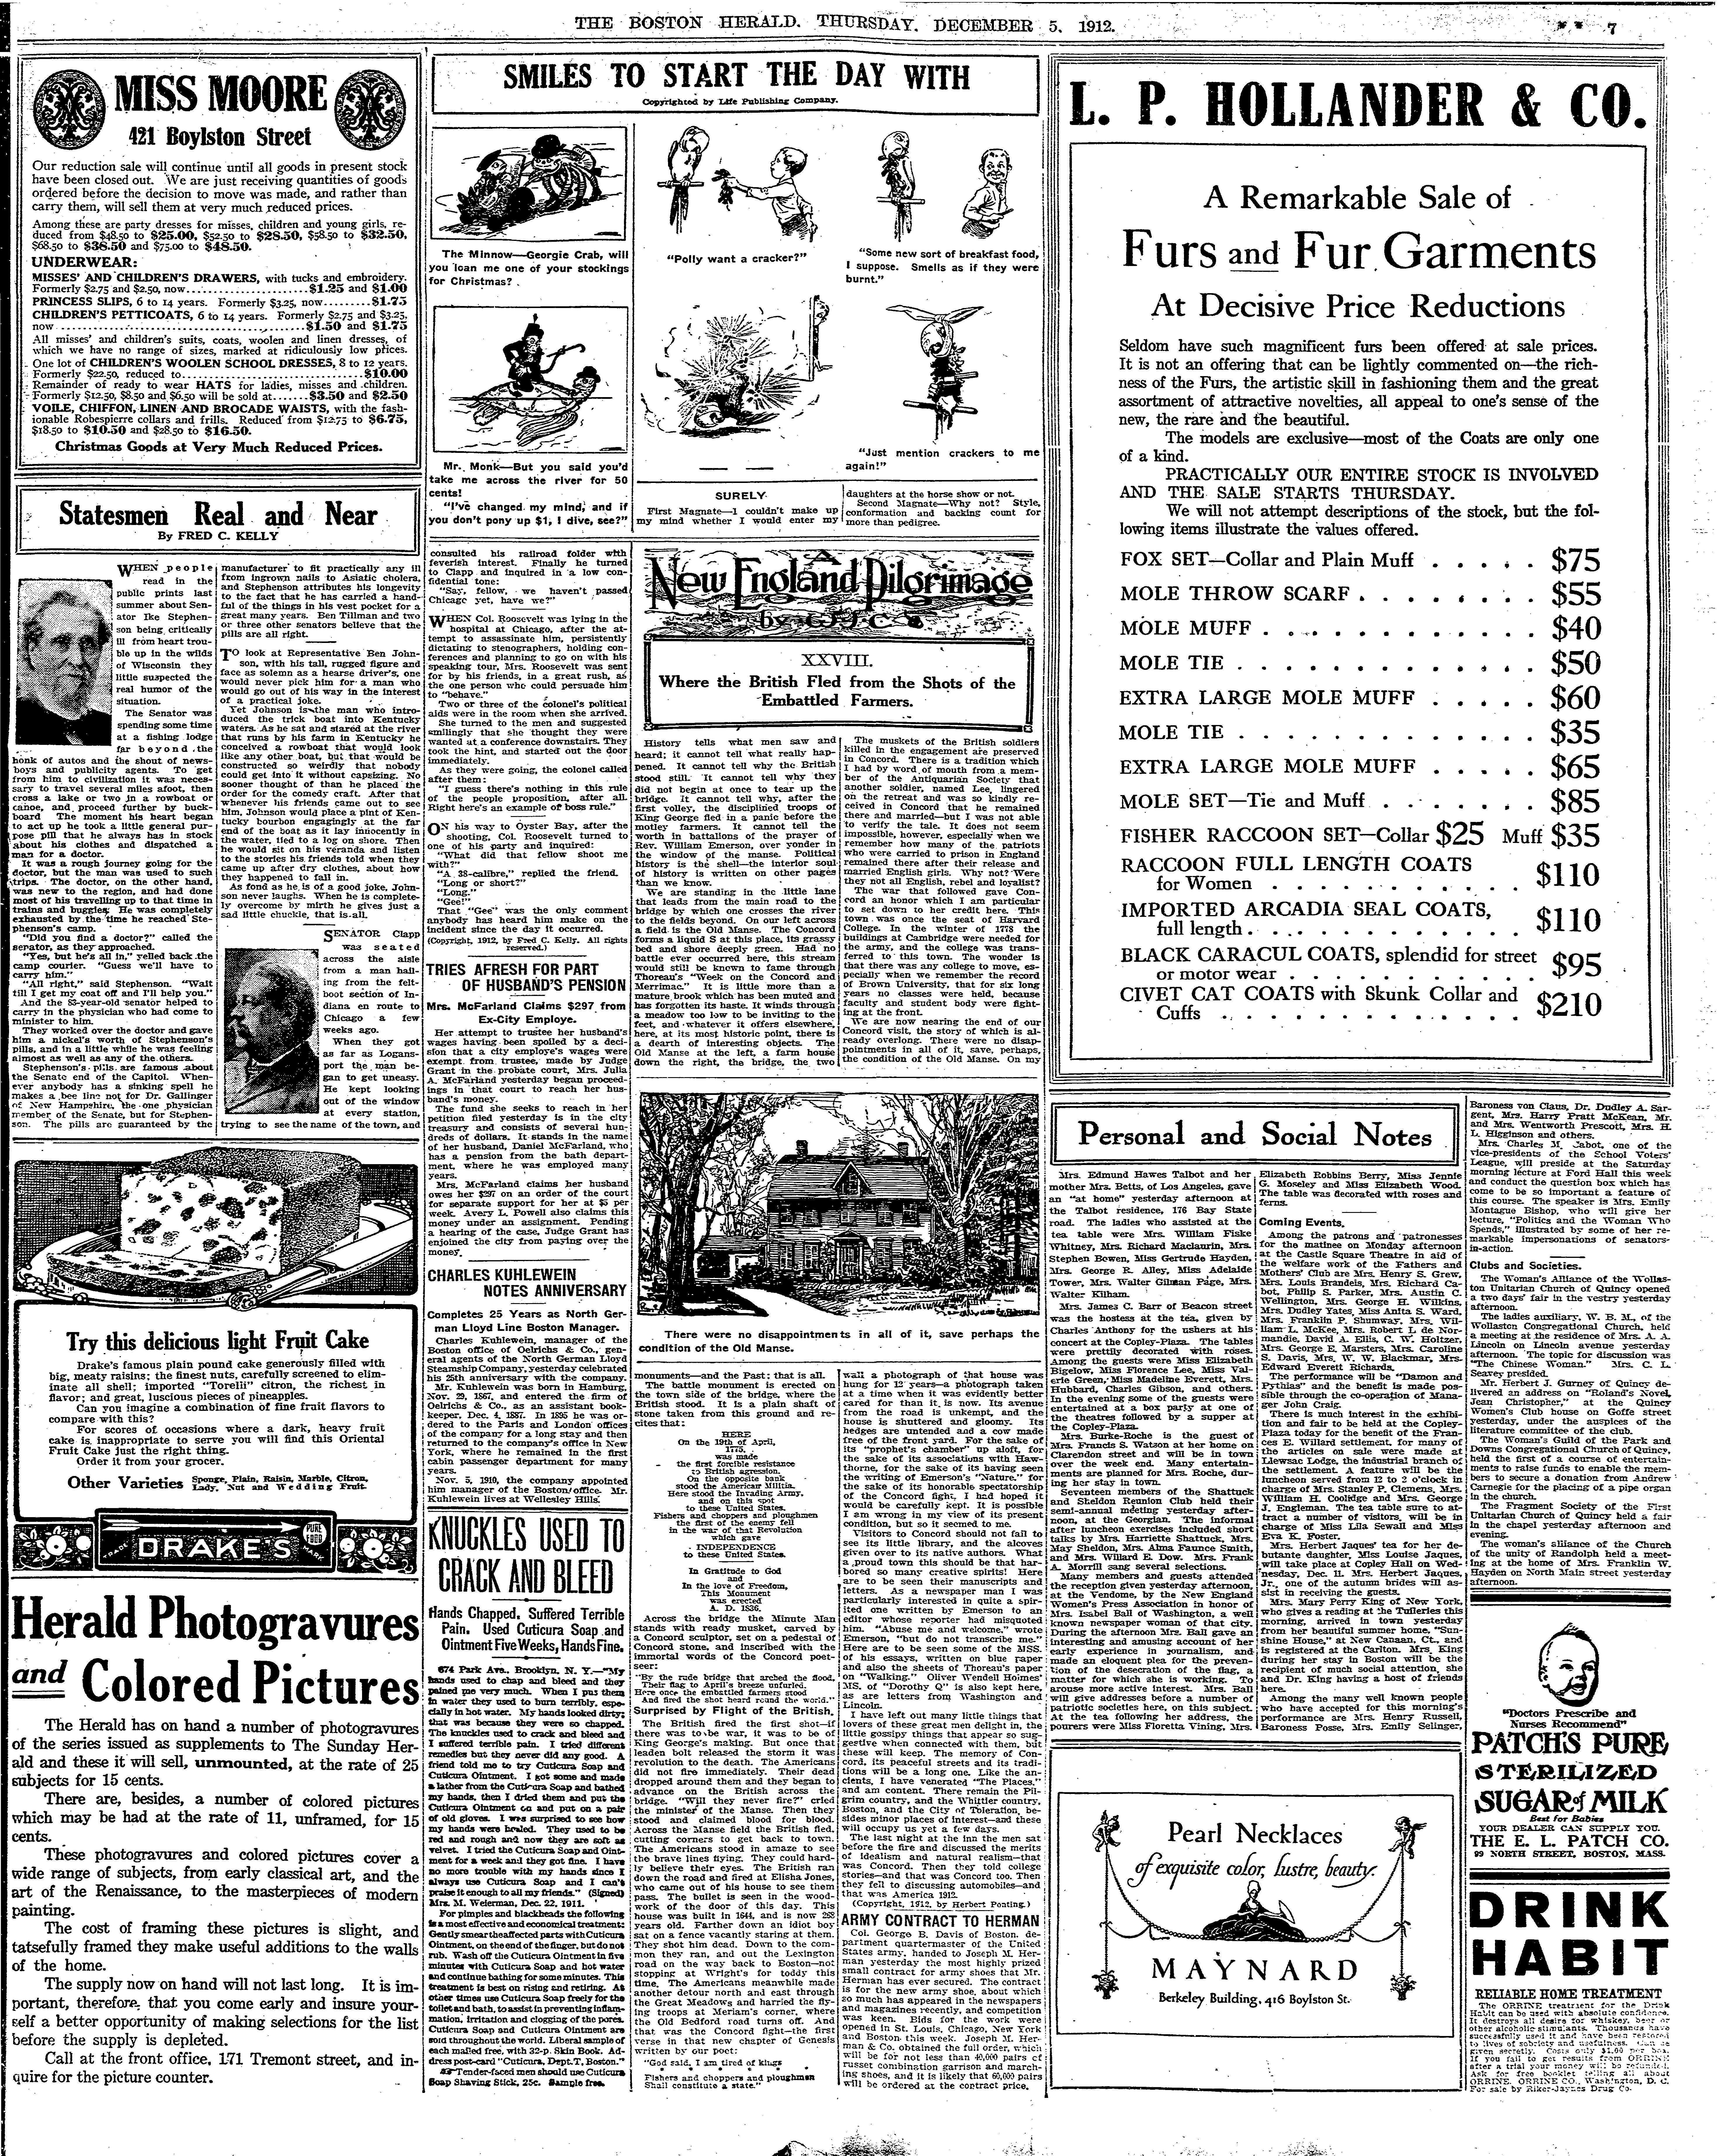 The Boston Herald (5 December 1912) with a Pearl Necklaces advertisement for Maynard by W.A. Dwiggins.